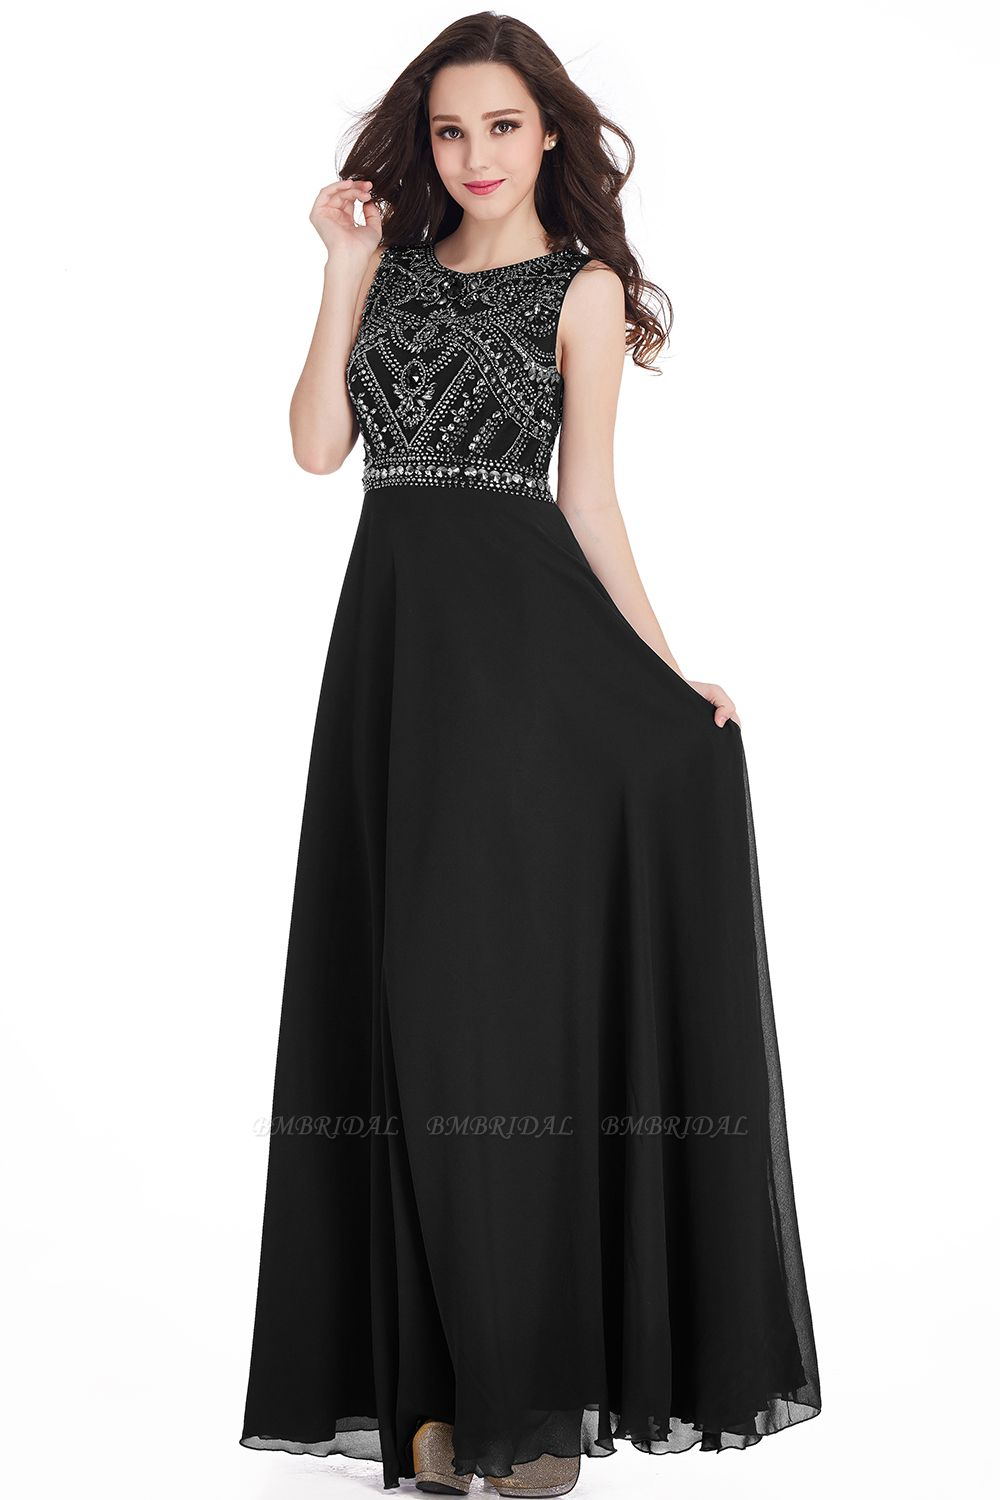 Gorgeous Sleeveless Crystal Long Prom Dress Chiffon Evening Gowns Online